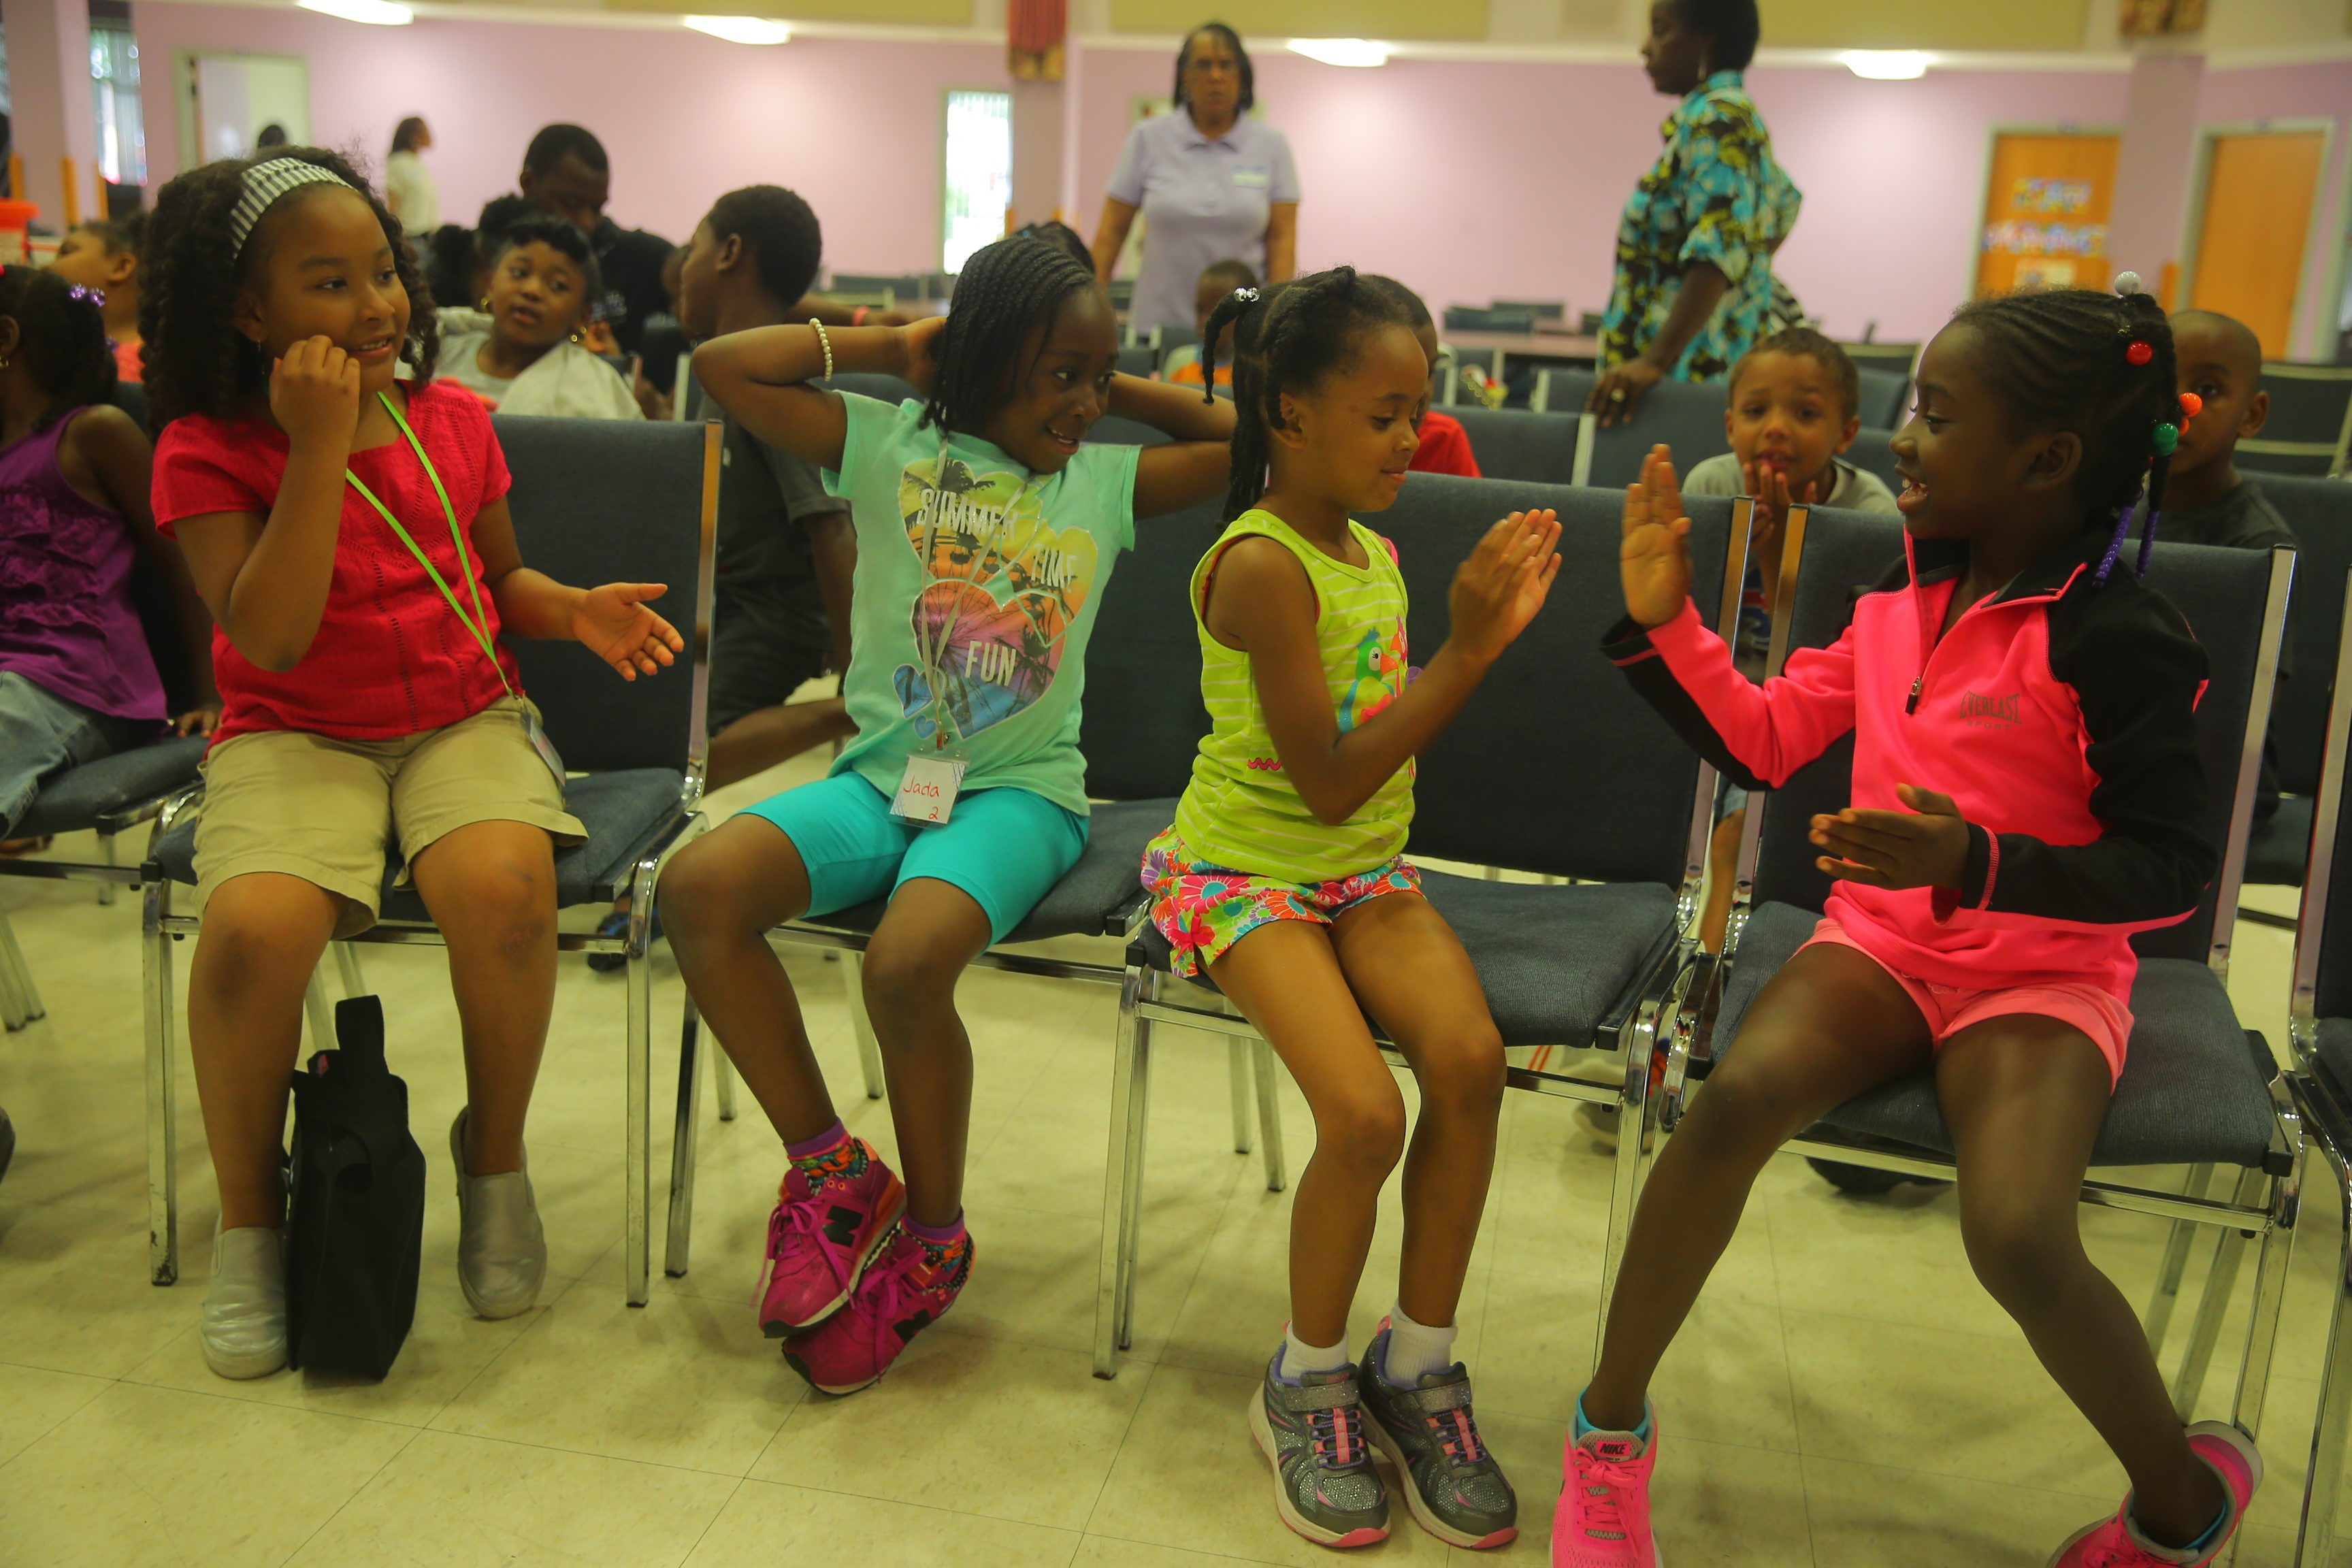 From left, Bethany Callahan, 7, and Jada Knight, 8, look on as Lanija Harrington, 6, and Adrianna Mattison, 7, play patty-cake as they wait for dismissal at the Buffalo Say Yes Summer Camp Program at Mount Olive Baptist Church. (John Hickey/Buffalo News)